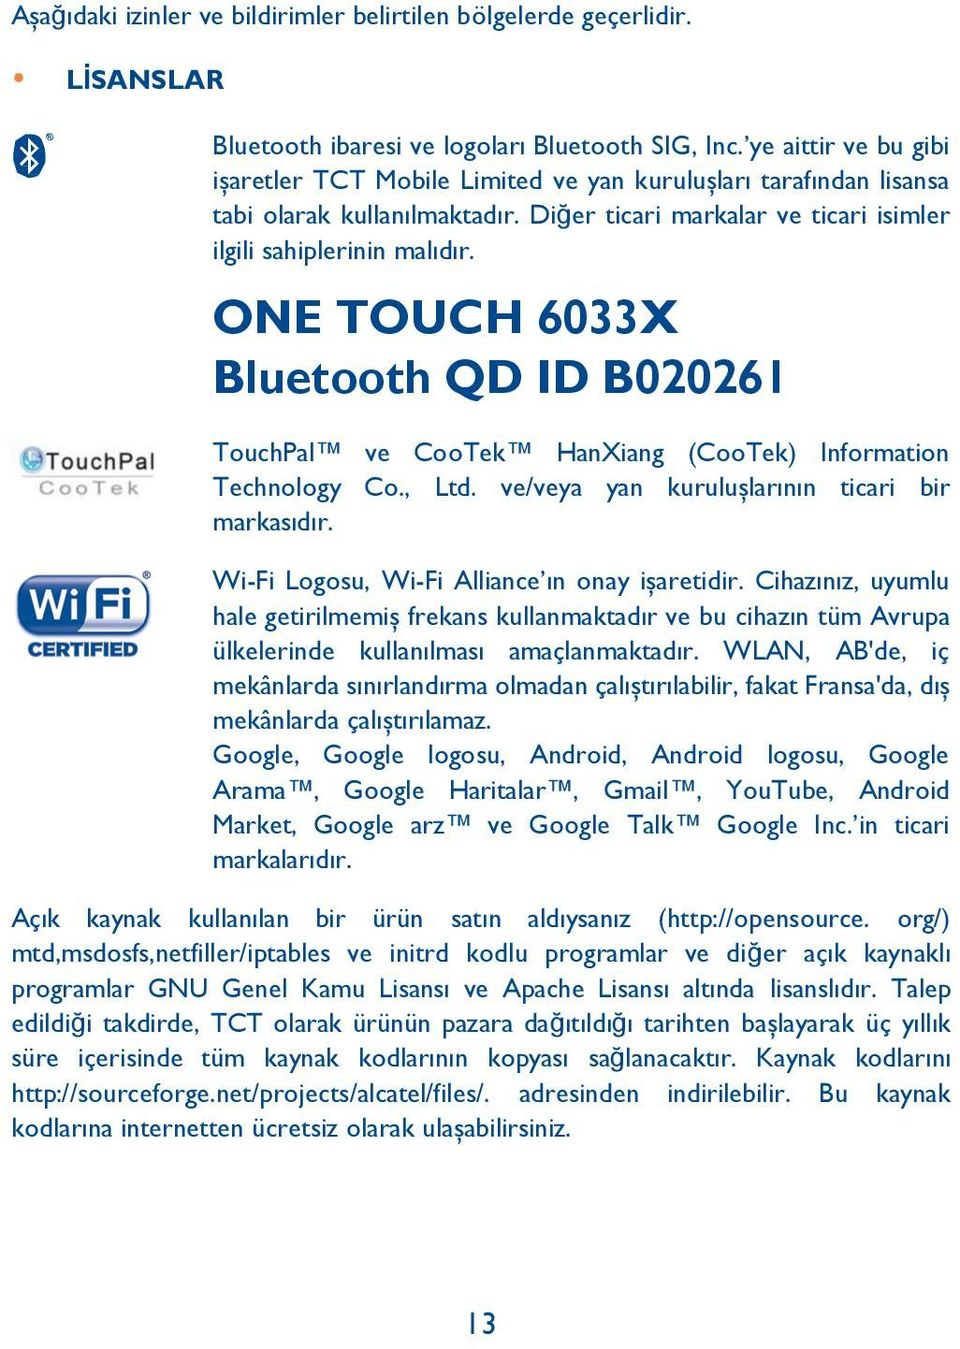 ONE TOUCH 6033X Bluetooth QD ID B020261 TouchPal ve CooTek HanXiang (CooTek) Information Technology Co., Ltd. ve/veya yan kuruluşlarının ticari bir markasıdır.